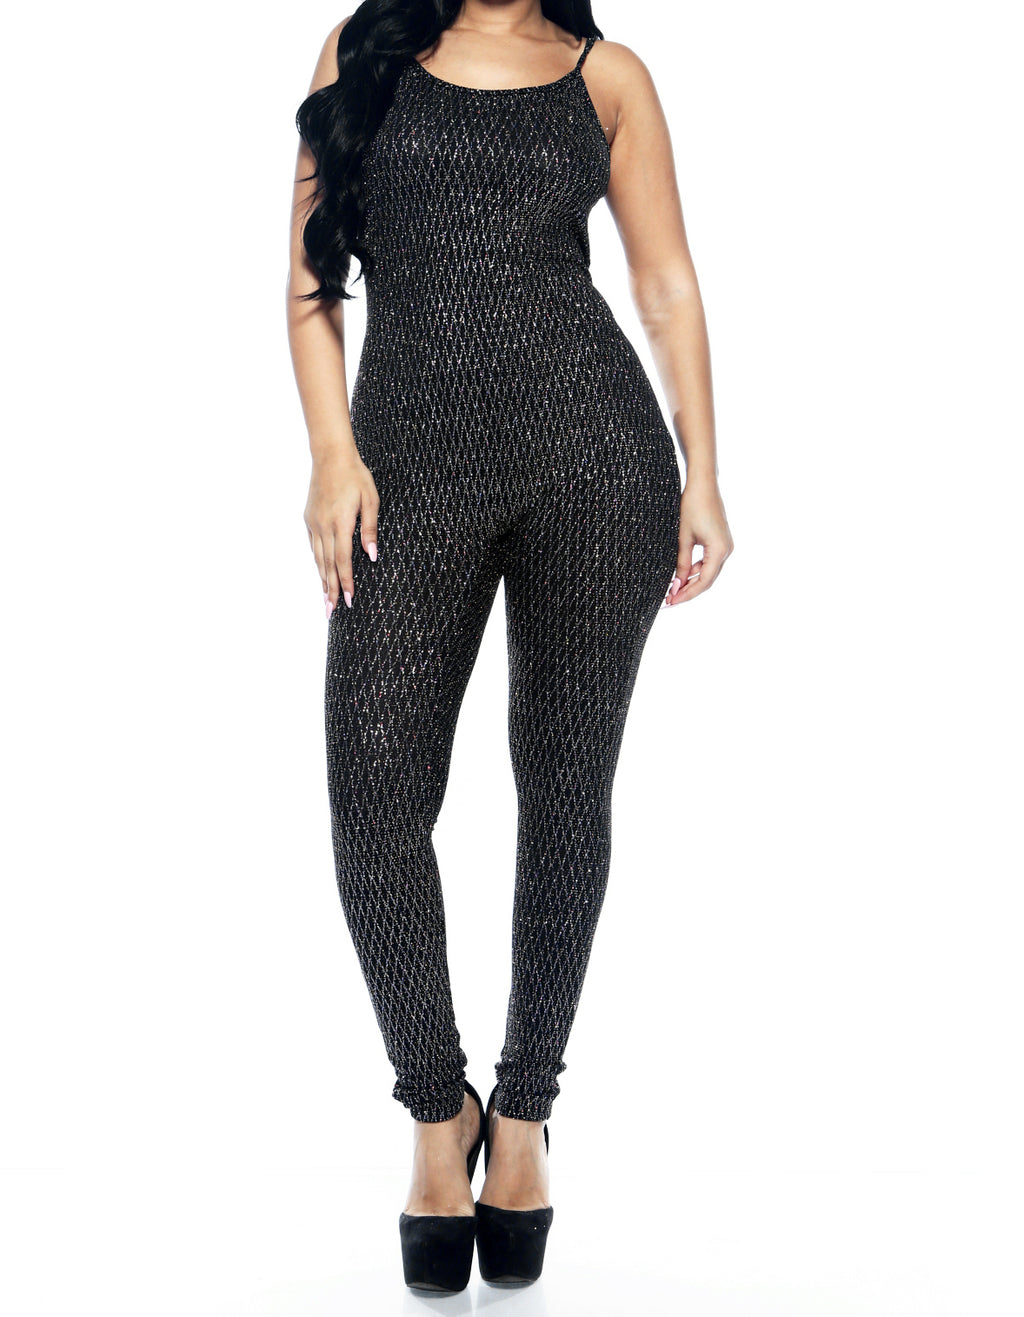 Glitter Spagetti Strap Jumper - Silver - The House of Stylez